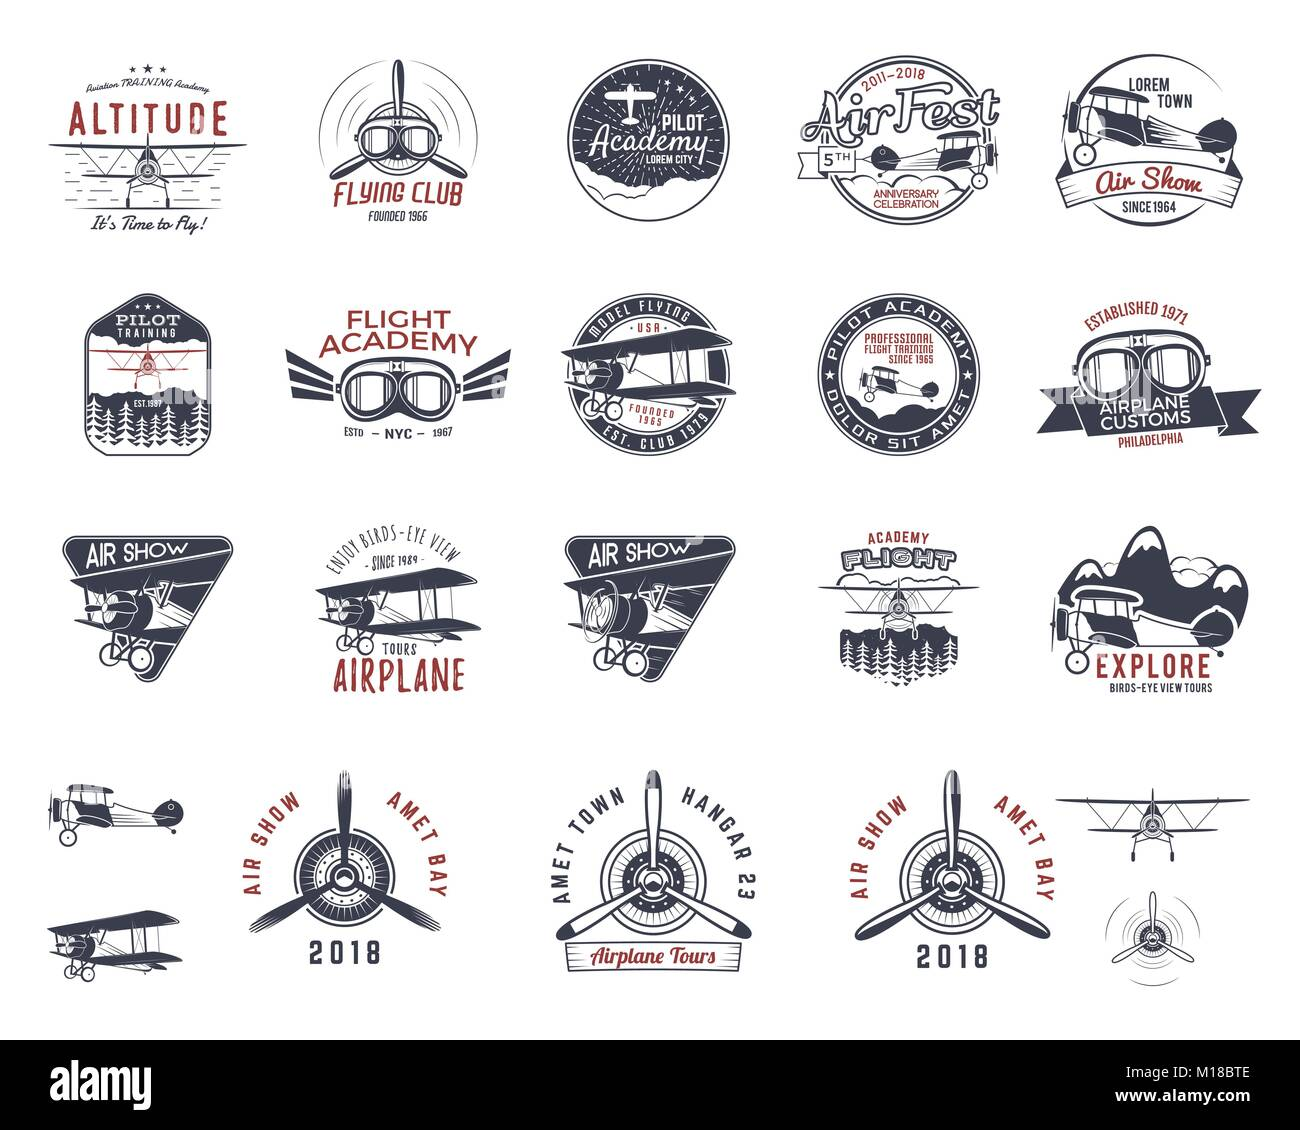 Vintage hand drawn old fly stamps. Travel or business airplane tour emblems. Biplane academy labels. Retro aerial - Stock Image